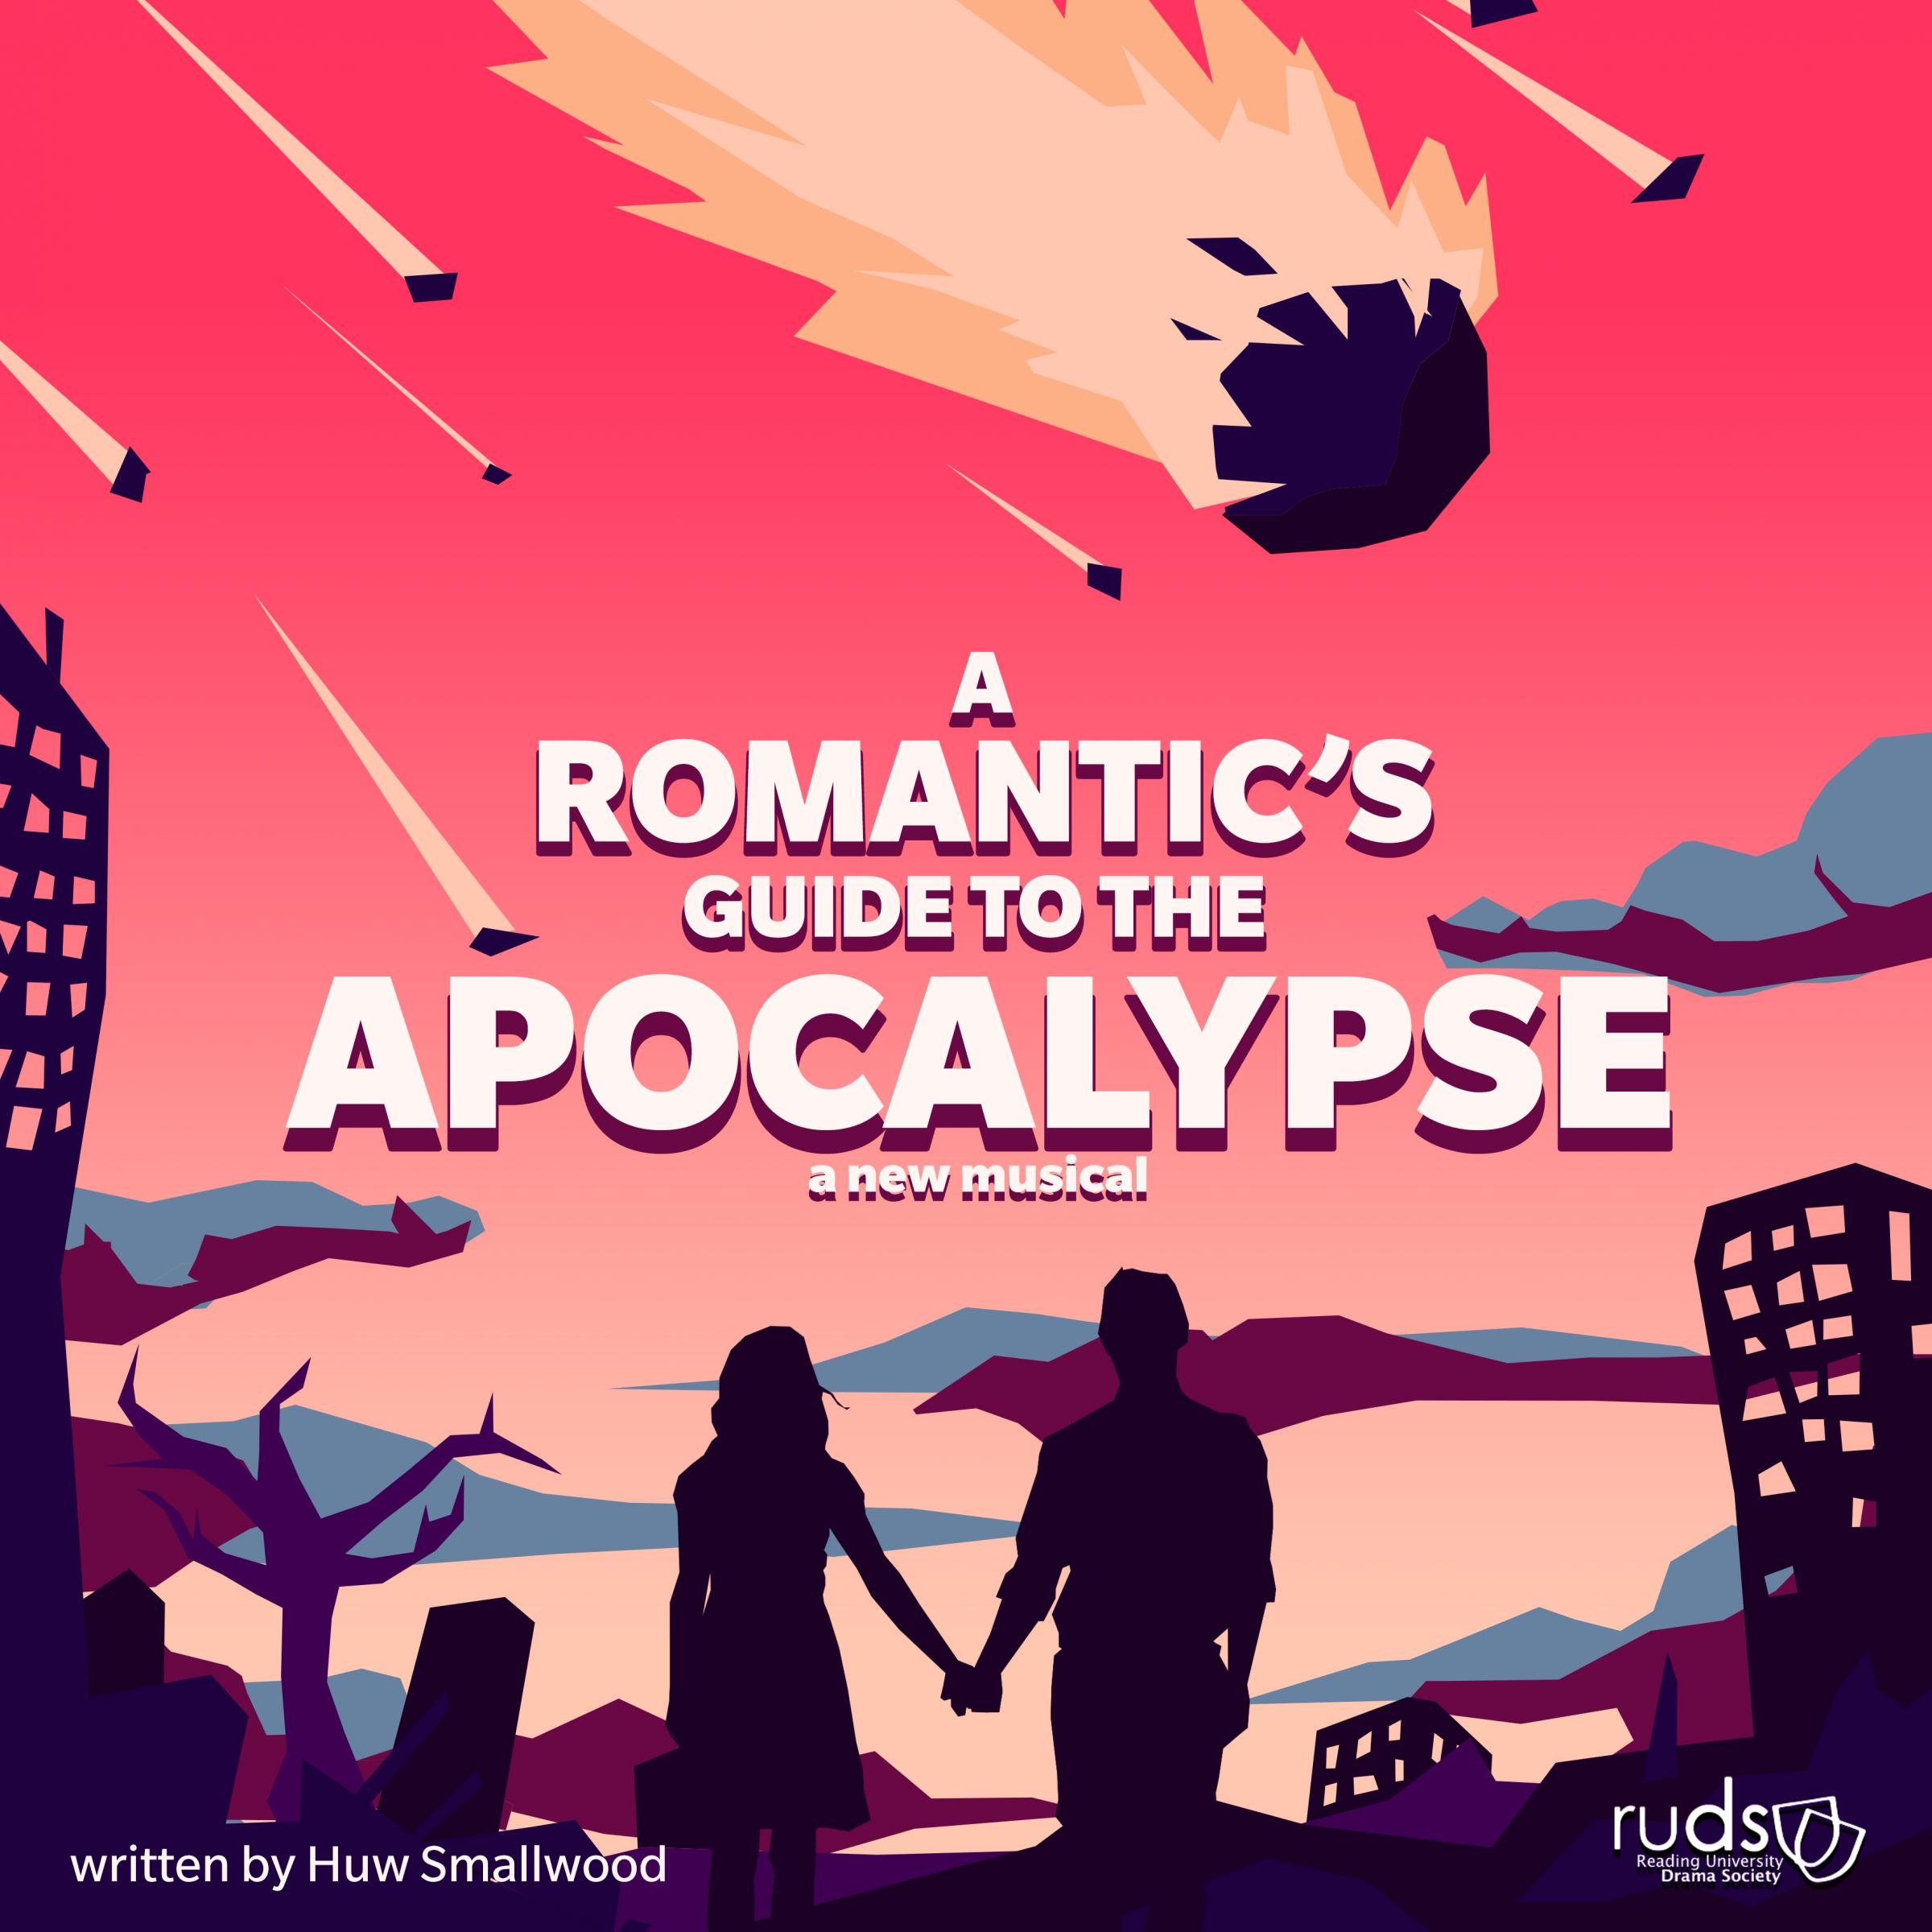 A Romantic's Guide to the Apocalypse